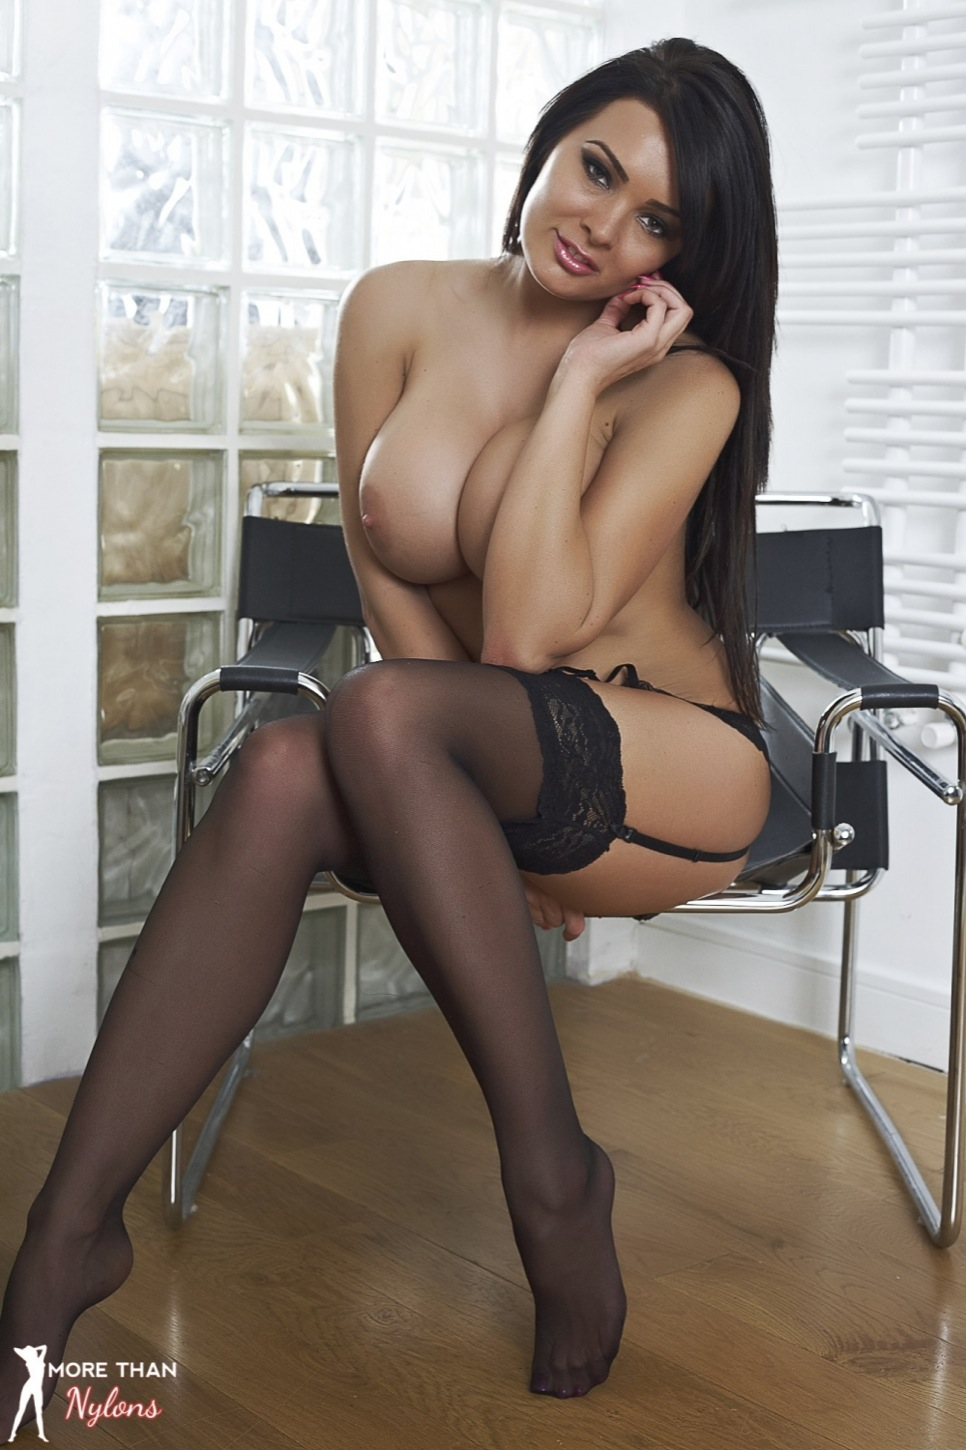 nude girl neon stockings image Sexy